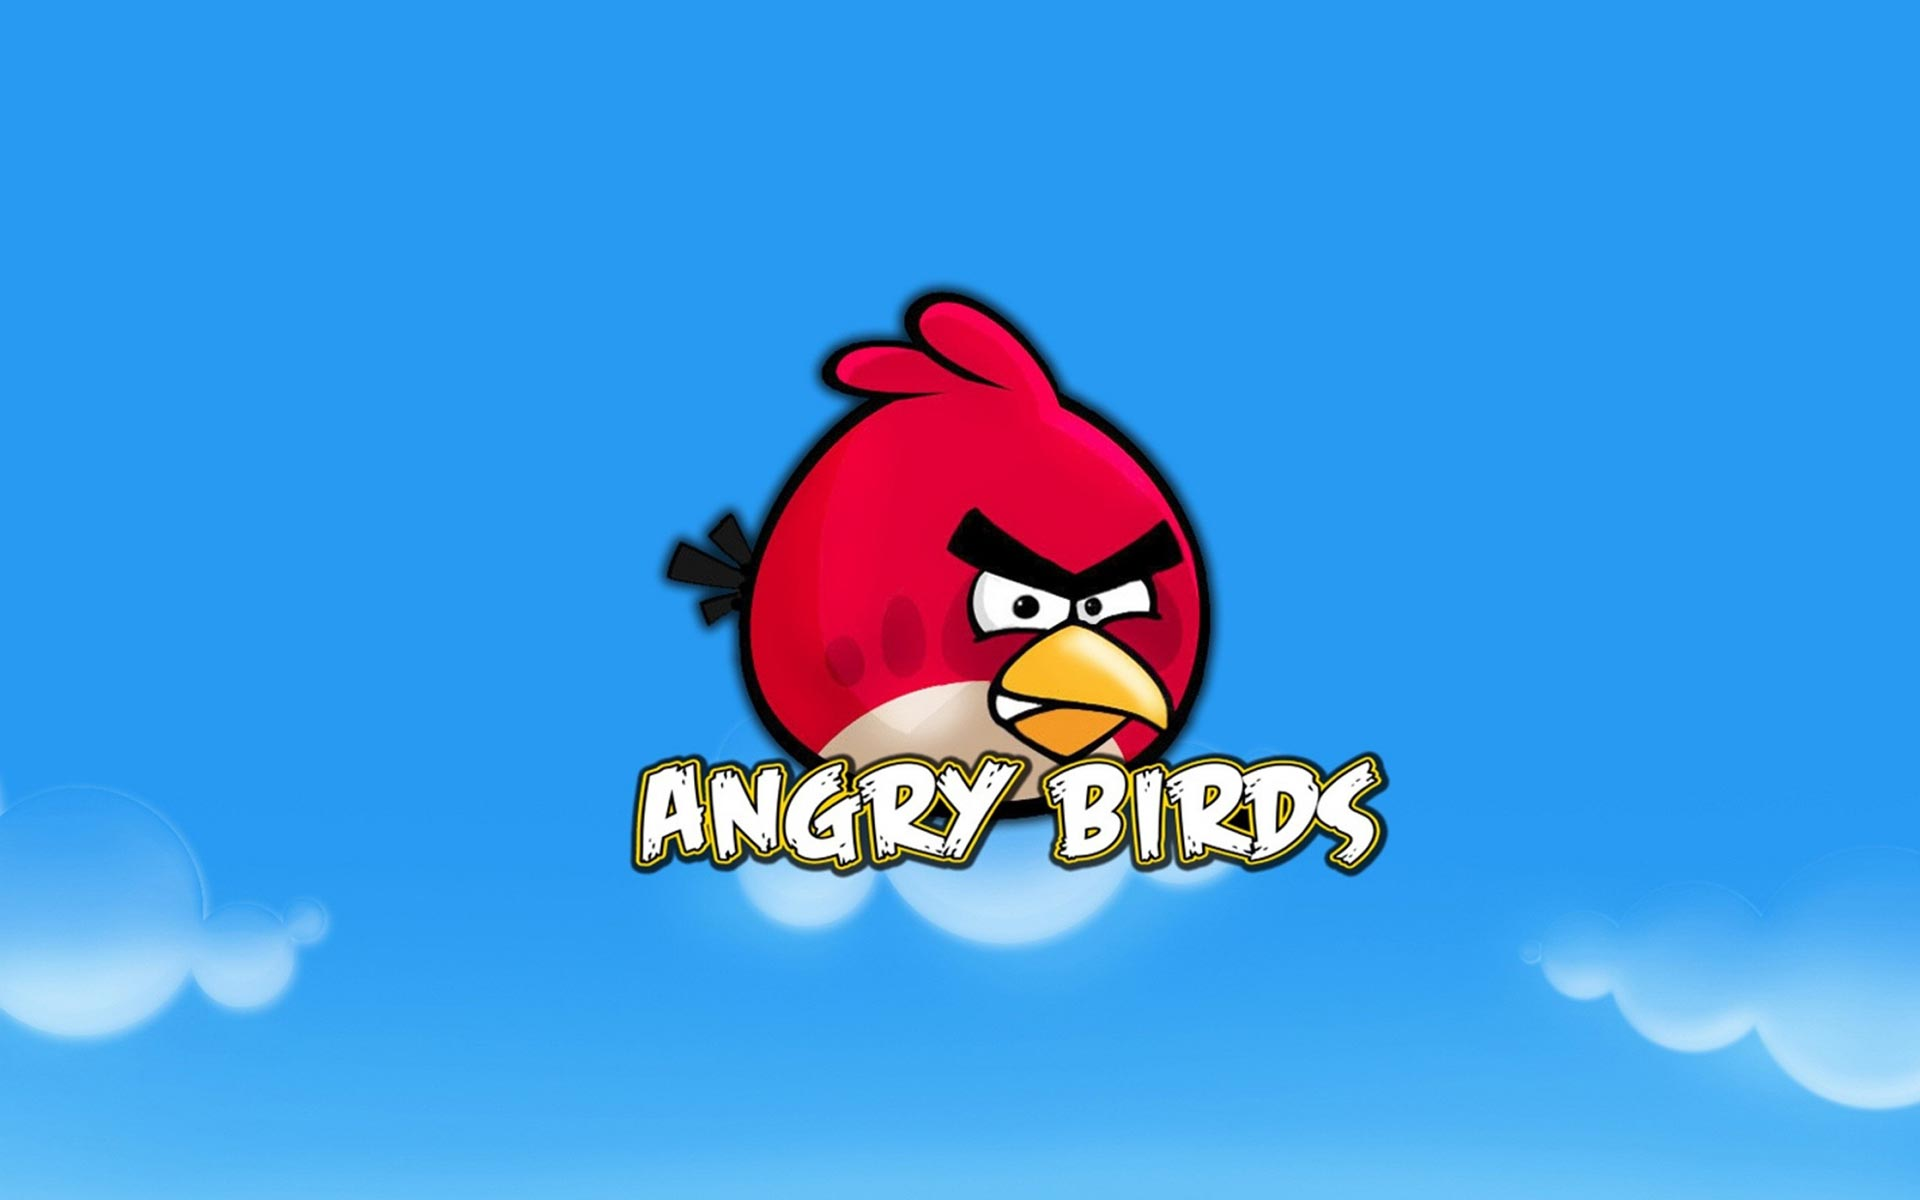 Angry Birds HD Wallpapers 8